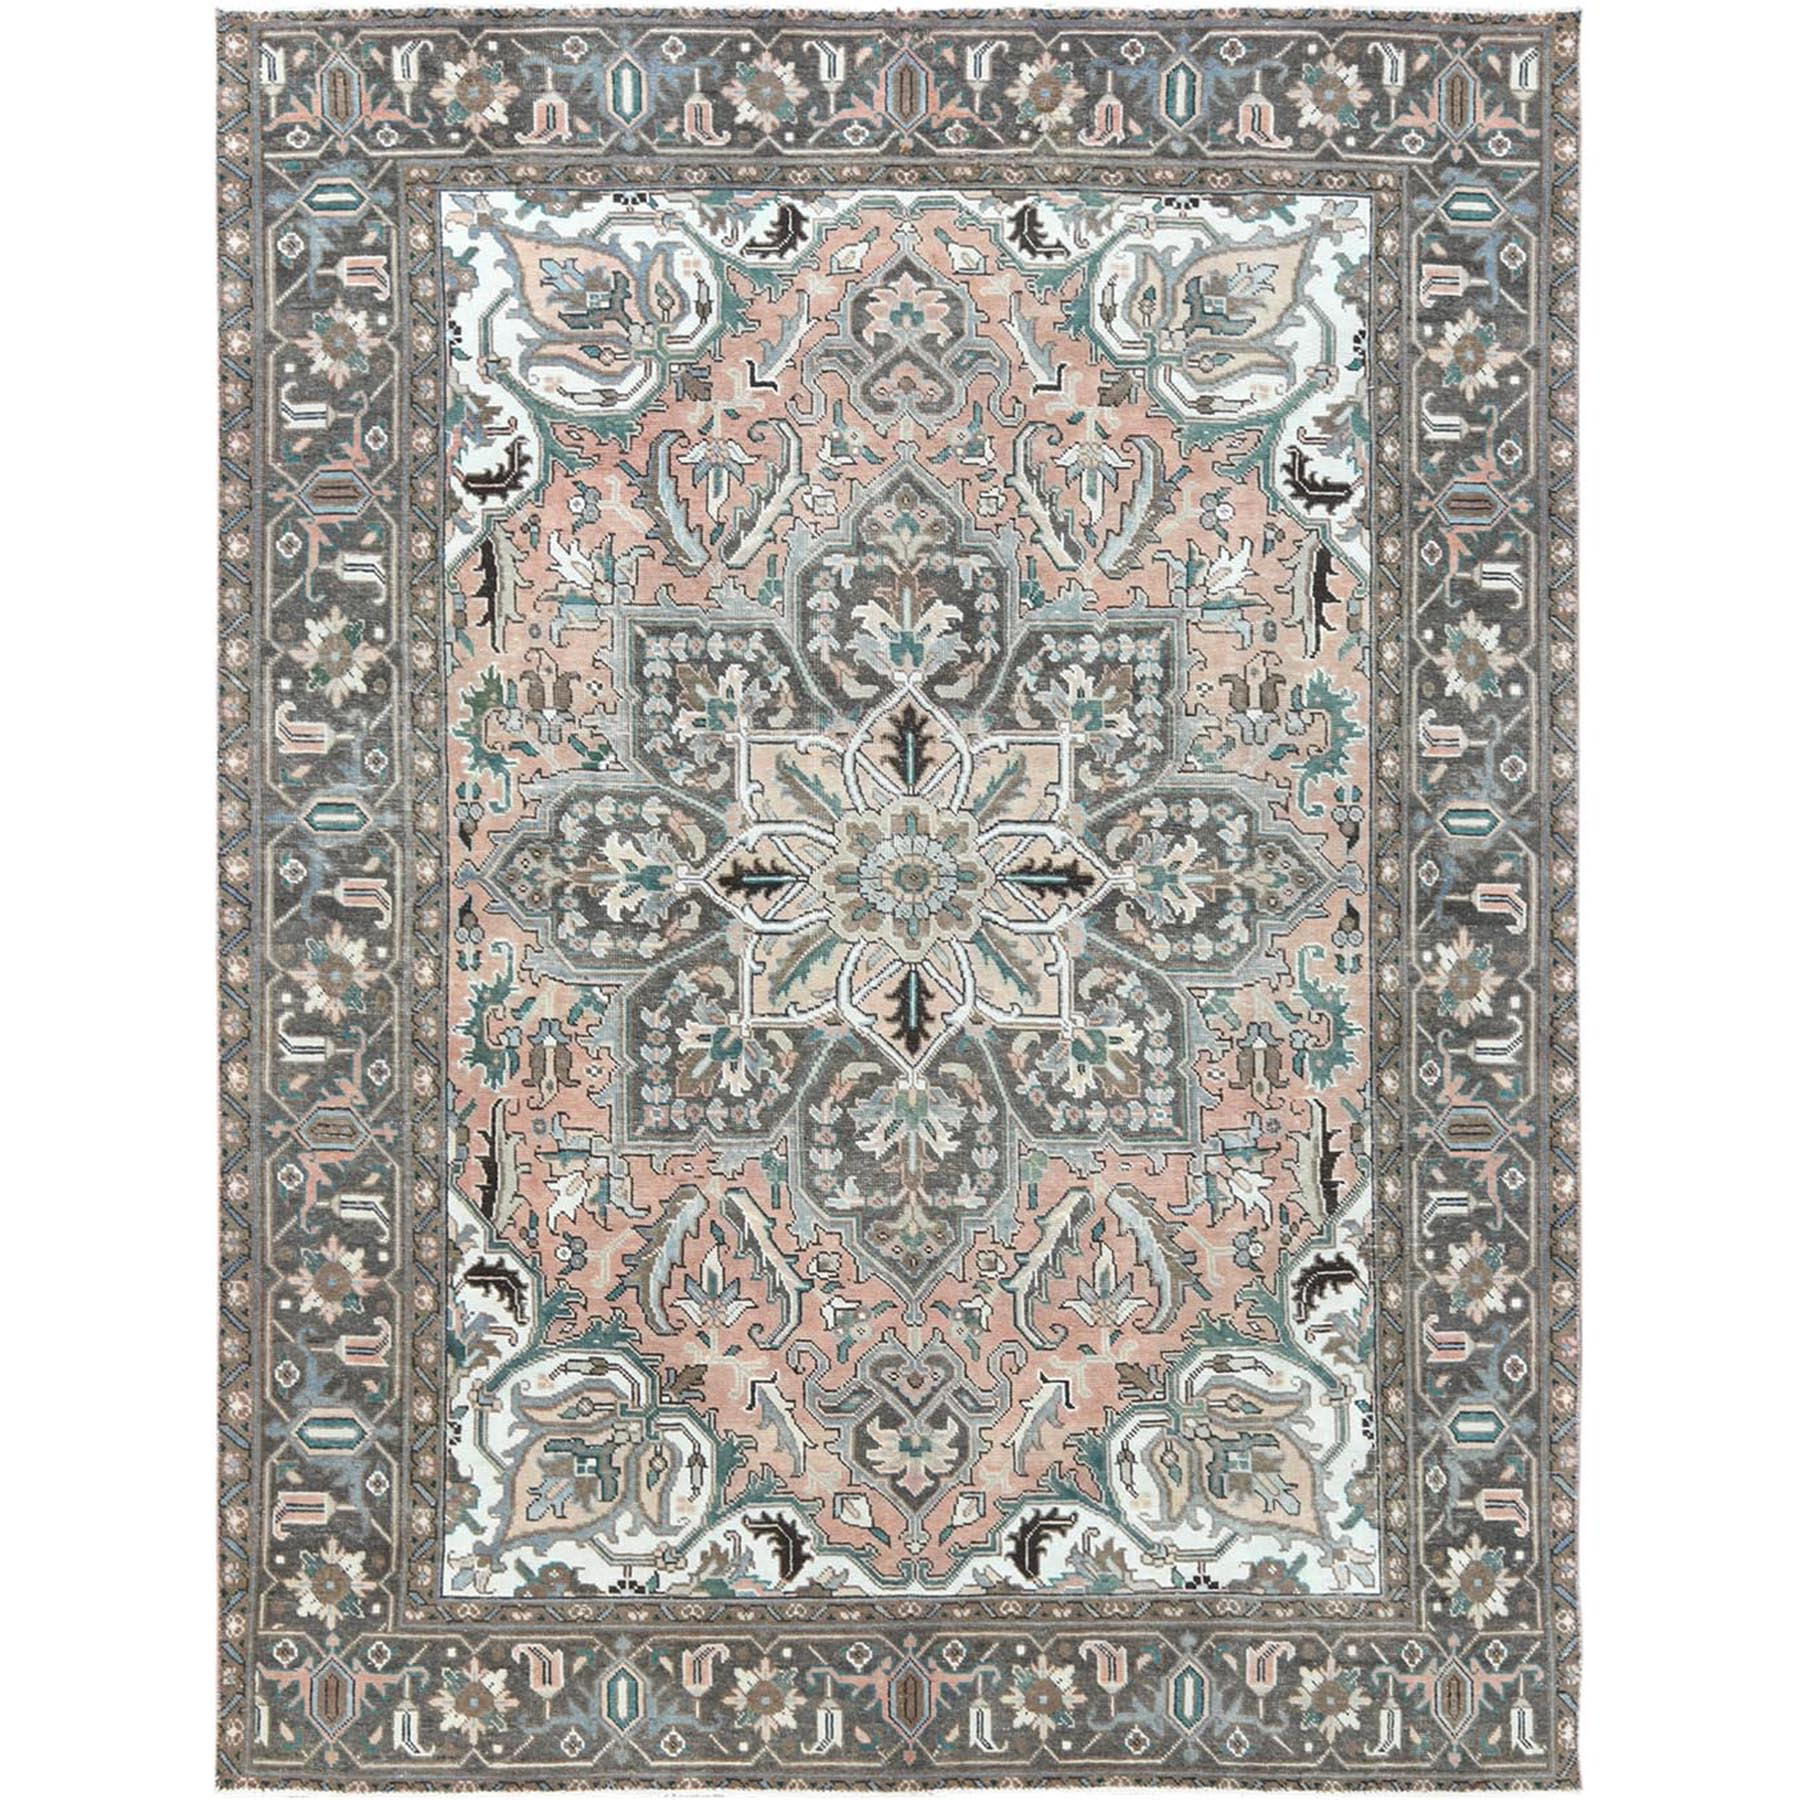 """8'3""""X10'10"""" Semi Antique Pink Color Flower Design Persian Heriz Pure Wool Clean Hand Knotted Oriental Rug moa60a6a"""